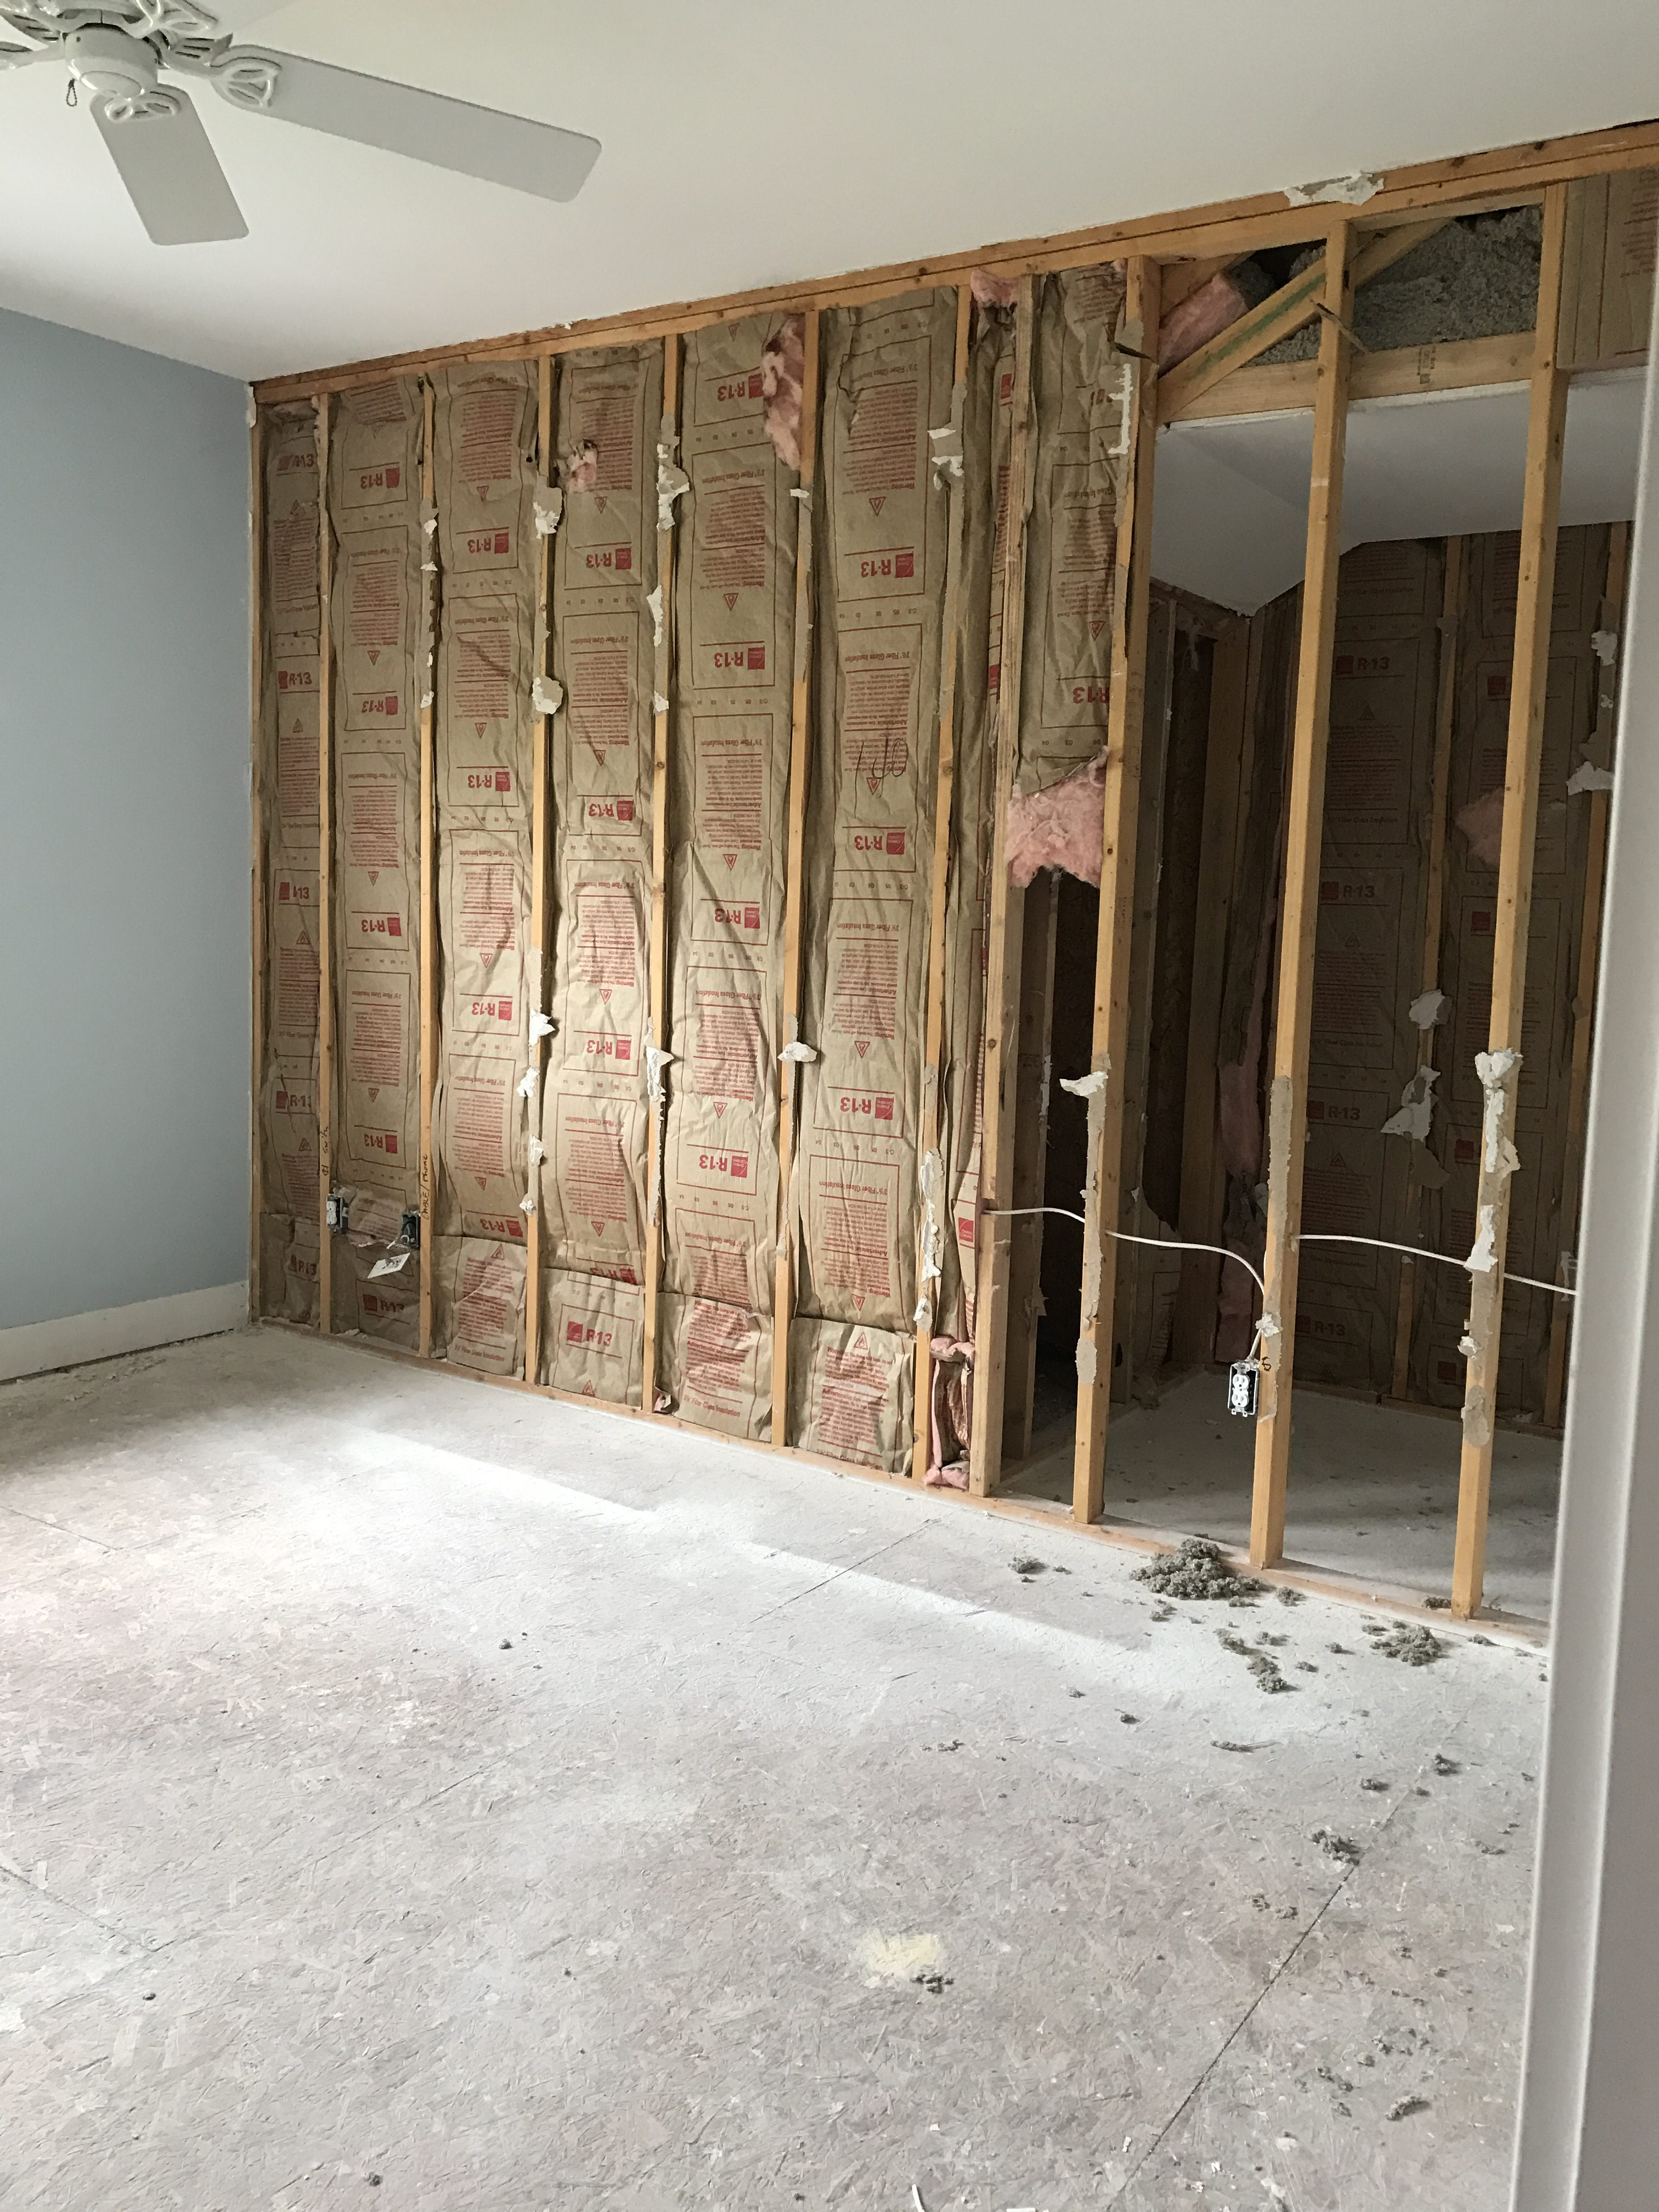 "We ""stole"" about 2 feet from this guest room to combine with the open cavity behind the original closet along with about 5 feet of the master bedroom closet accommodate a brand new master bathroom."